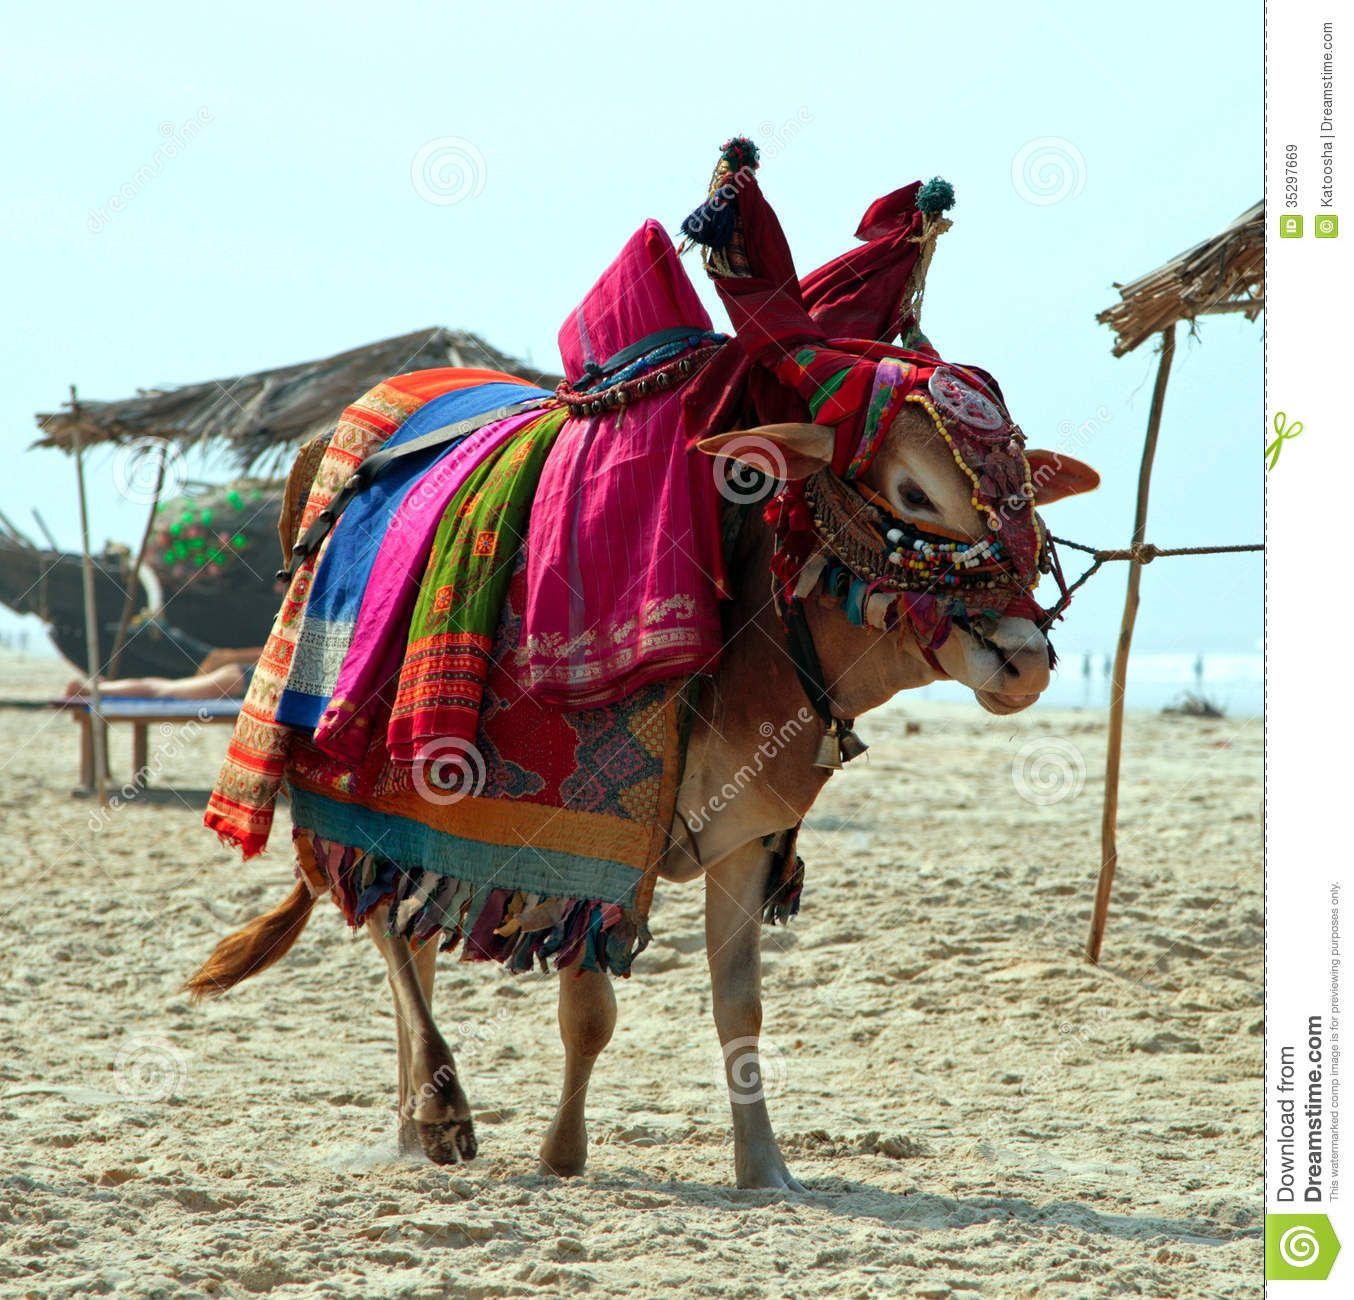 Indian Sacred Cow On The Beach - Download From Over 26 Million High Quality Stock Photos, Images, Vectors. Sign up for FREE today. Image: 35297669